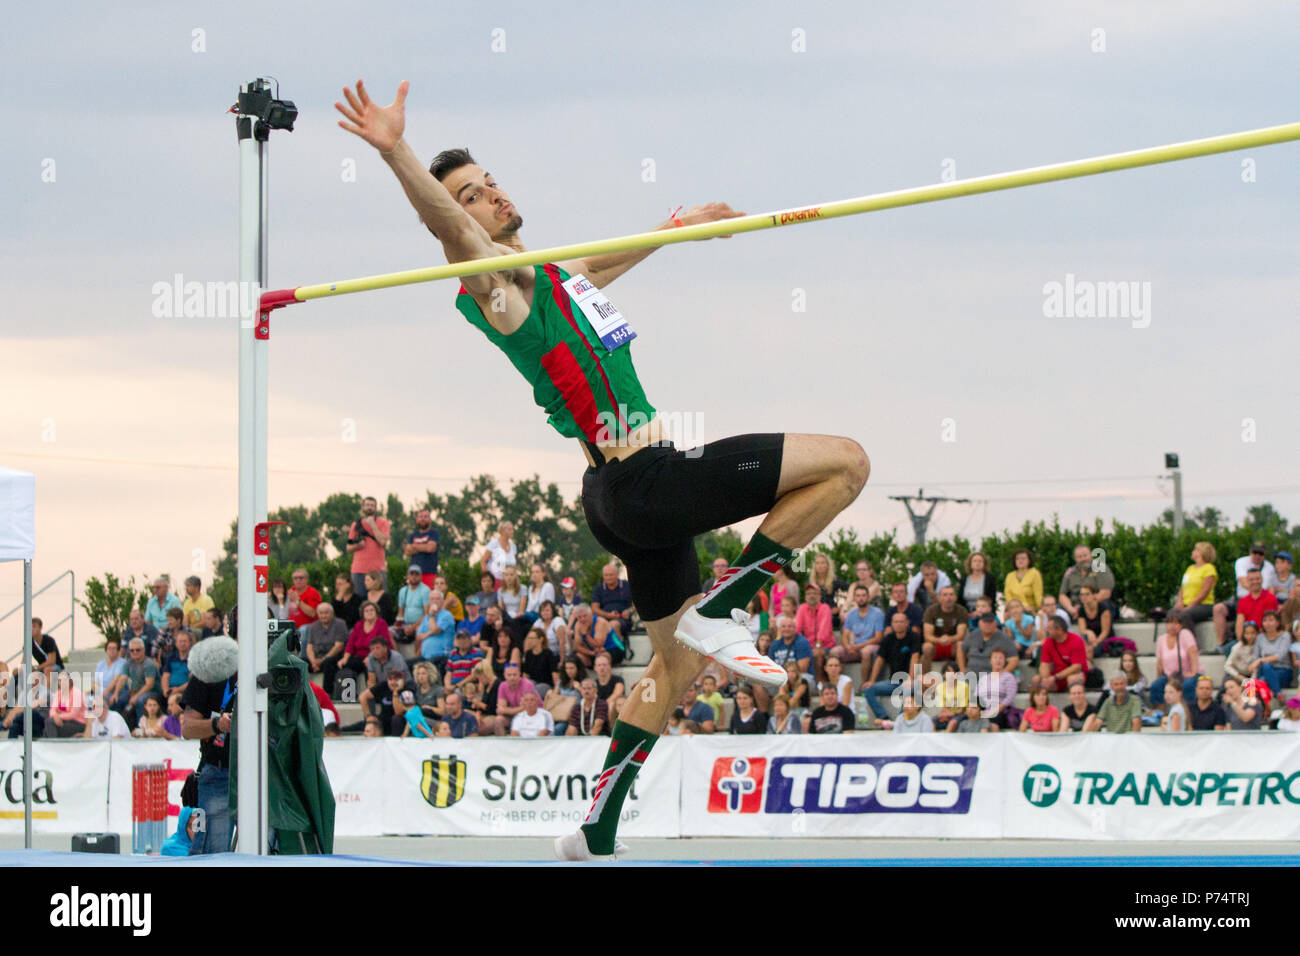 Mexican high jumper Edgar Rivera competing at the P-T-S athletics meeting in the sports site of x-bionic sphere® in Samorín, Slovakia - Stock Image